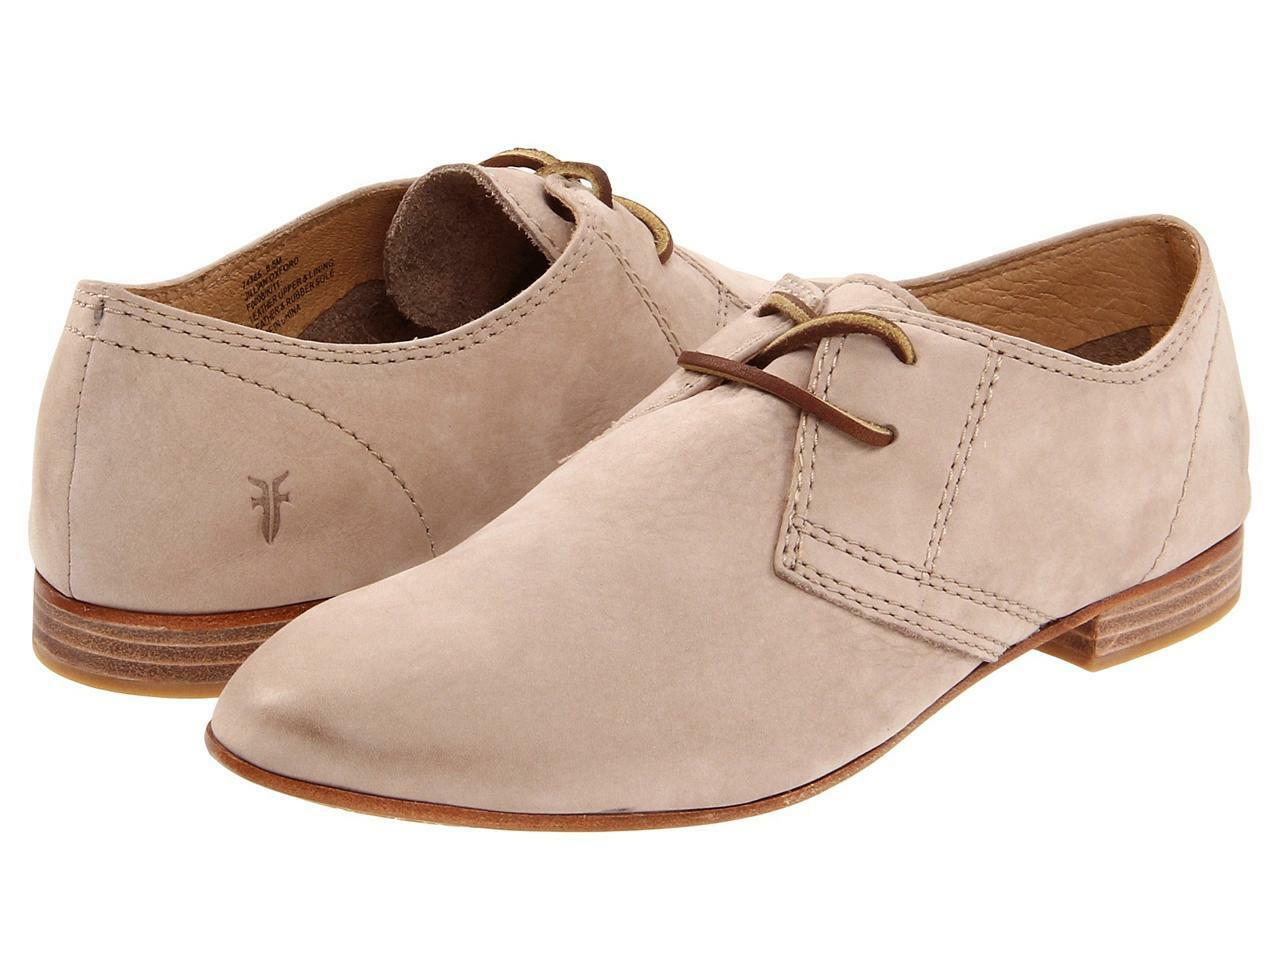 Frye Women's Jillian Oxford Taupe Lace Up Casual shoes Nubuck Beige Suede Leather